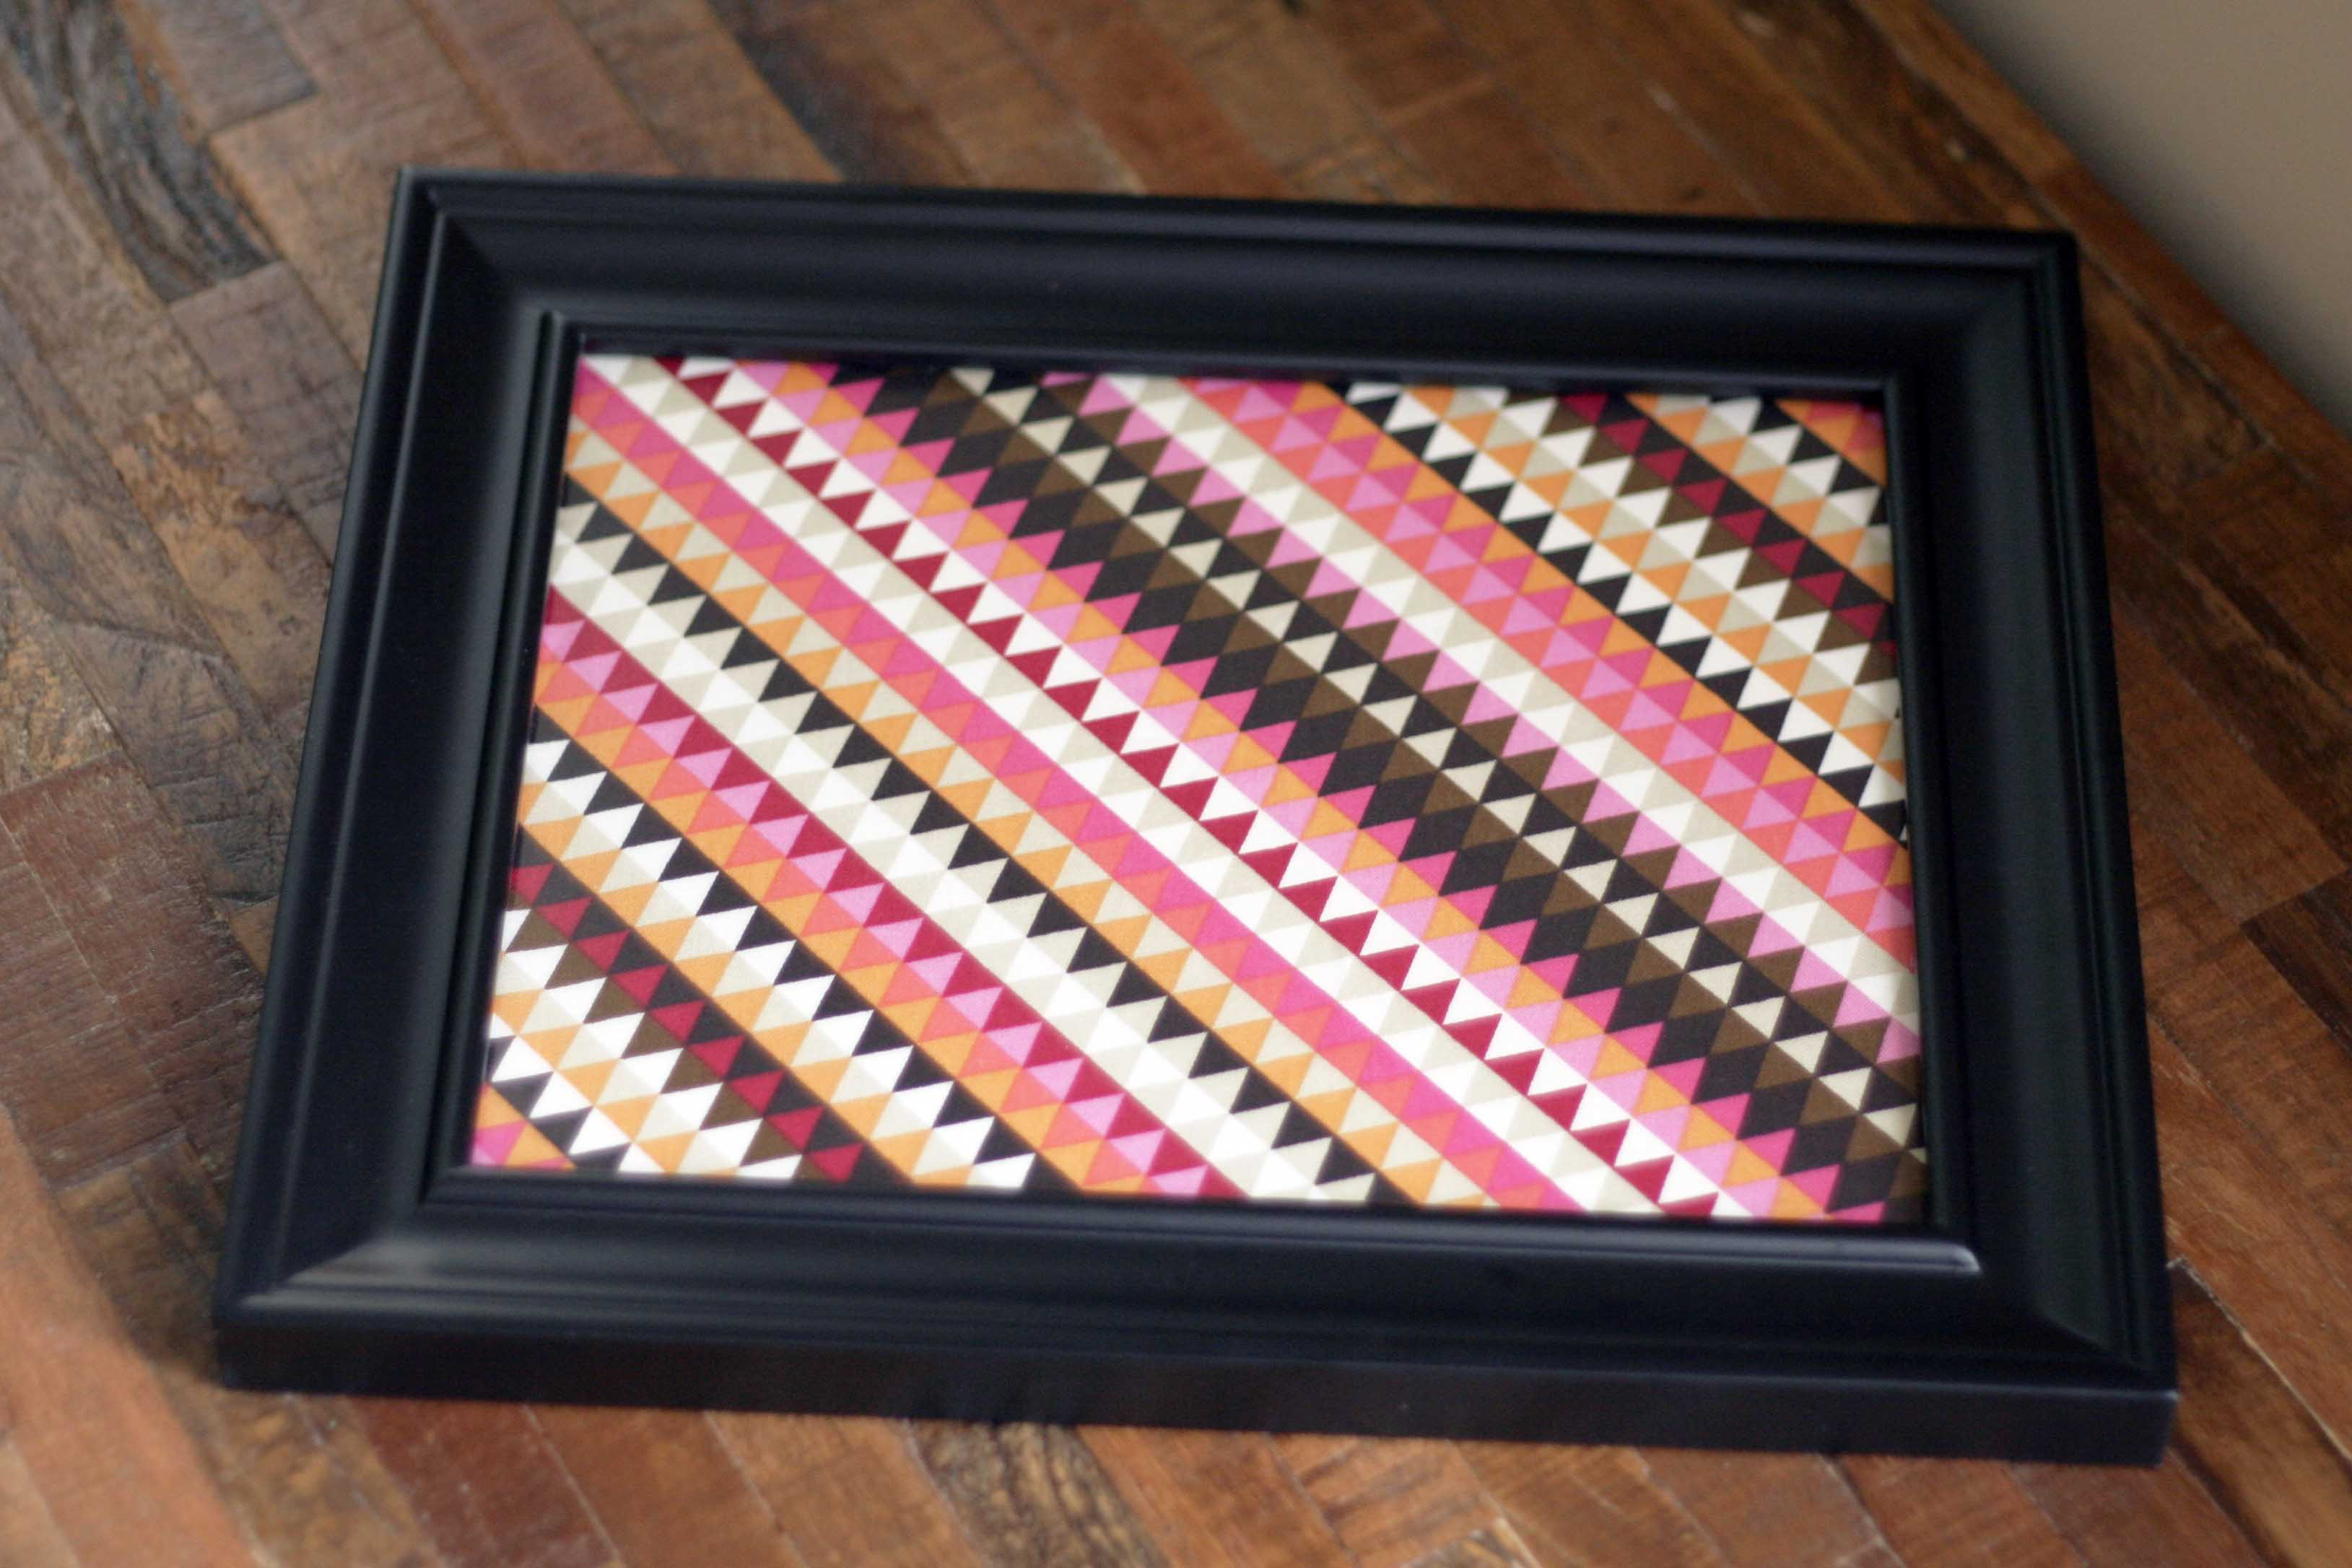 framing fabric is an incredibly easy diy project requiring just a few supplies